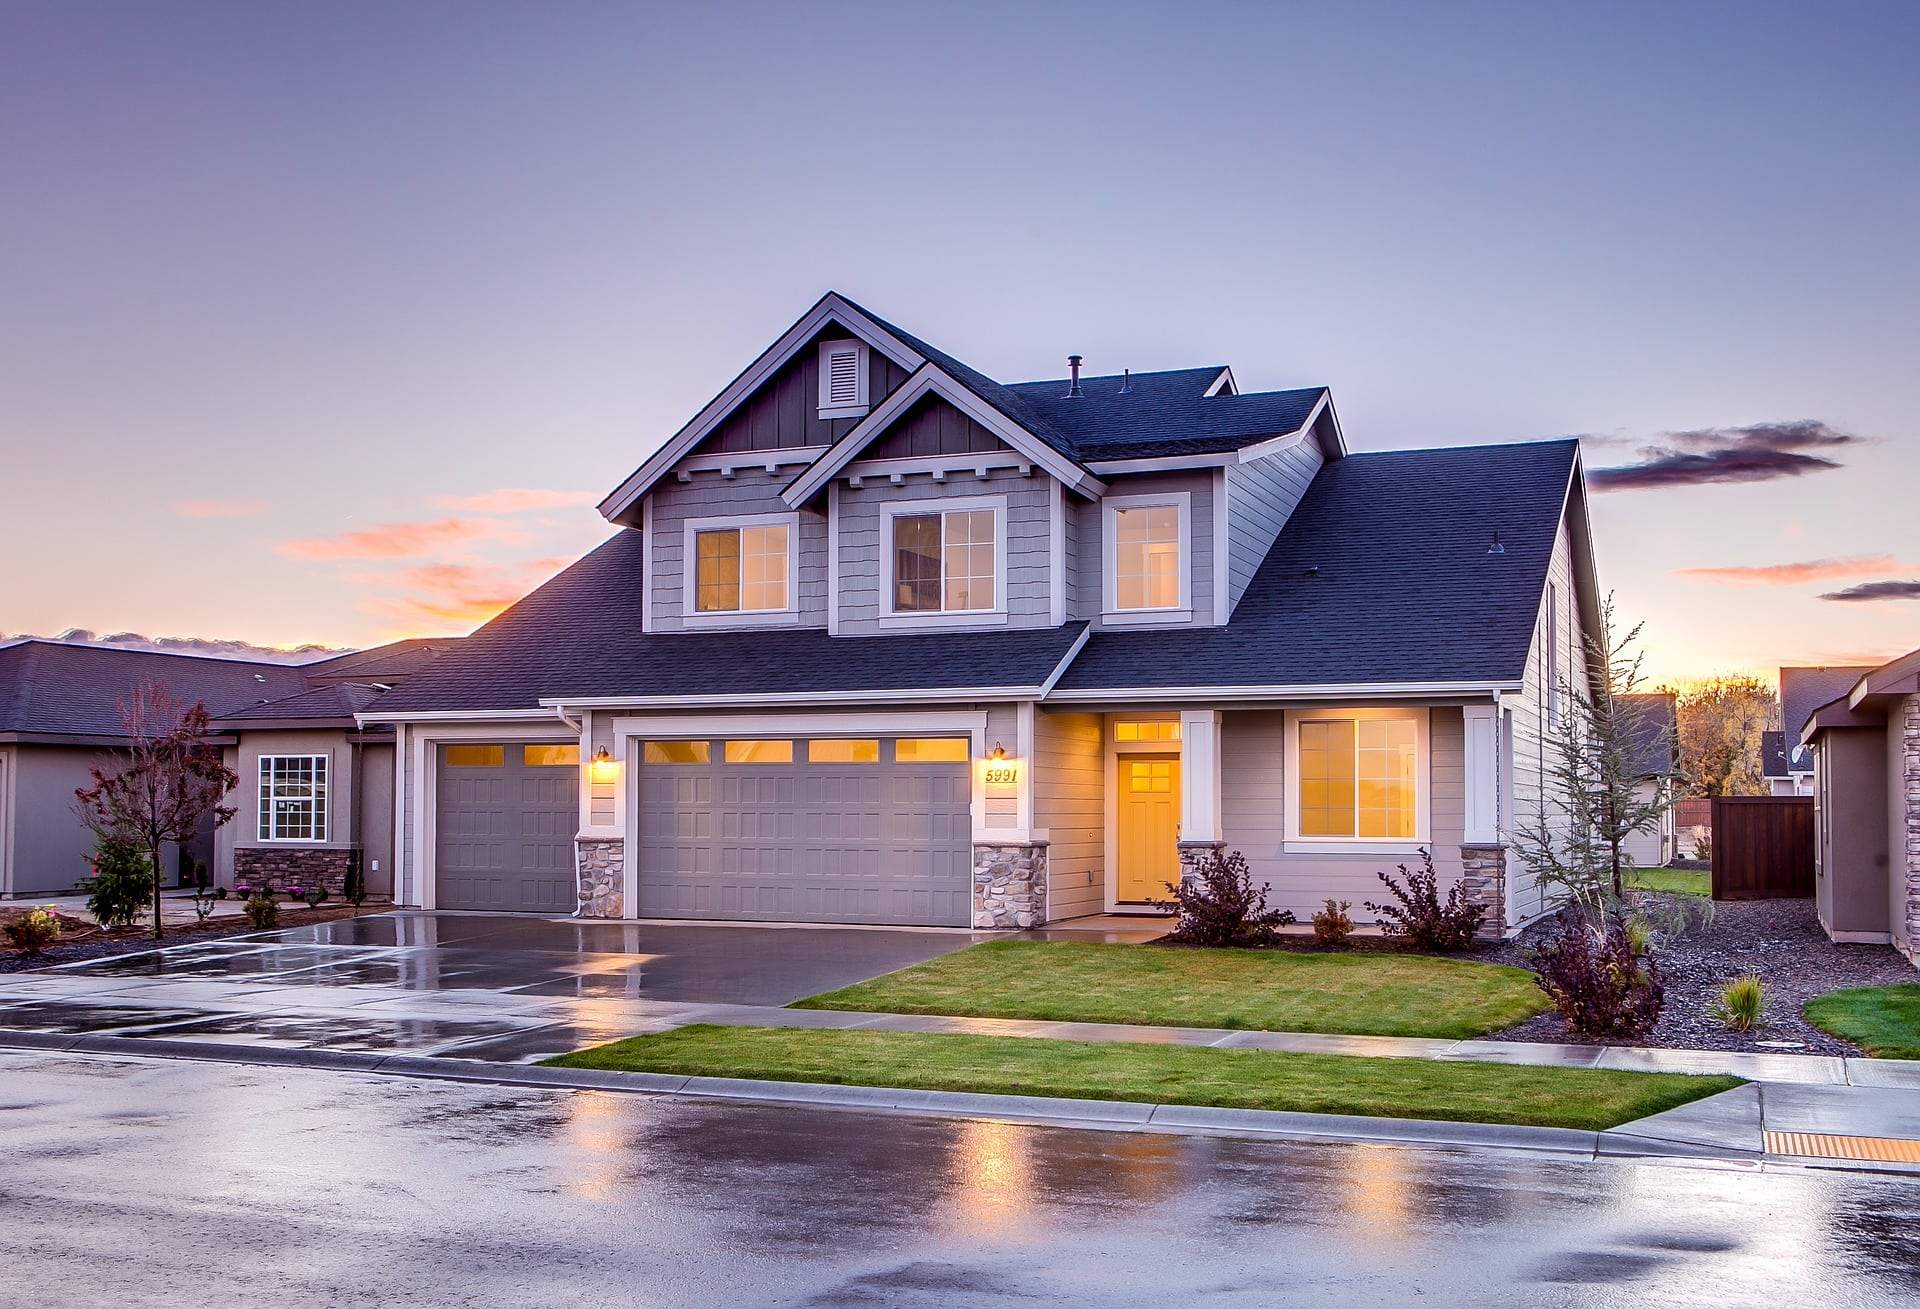 Home insurance Offers Much More Than Just Coverage For Your Home